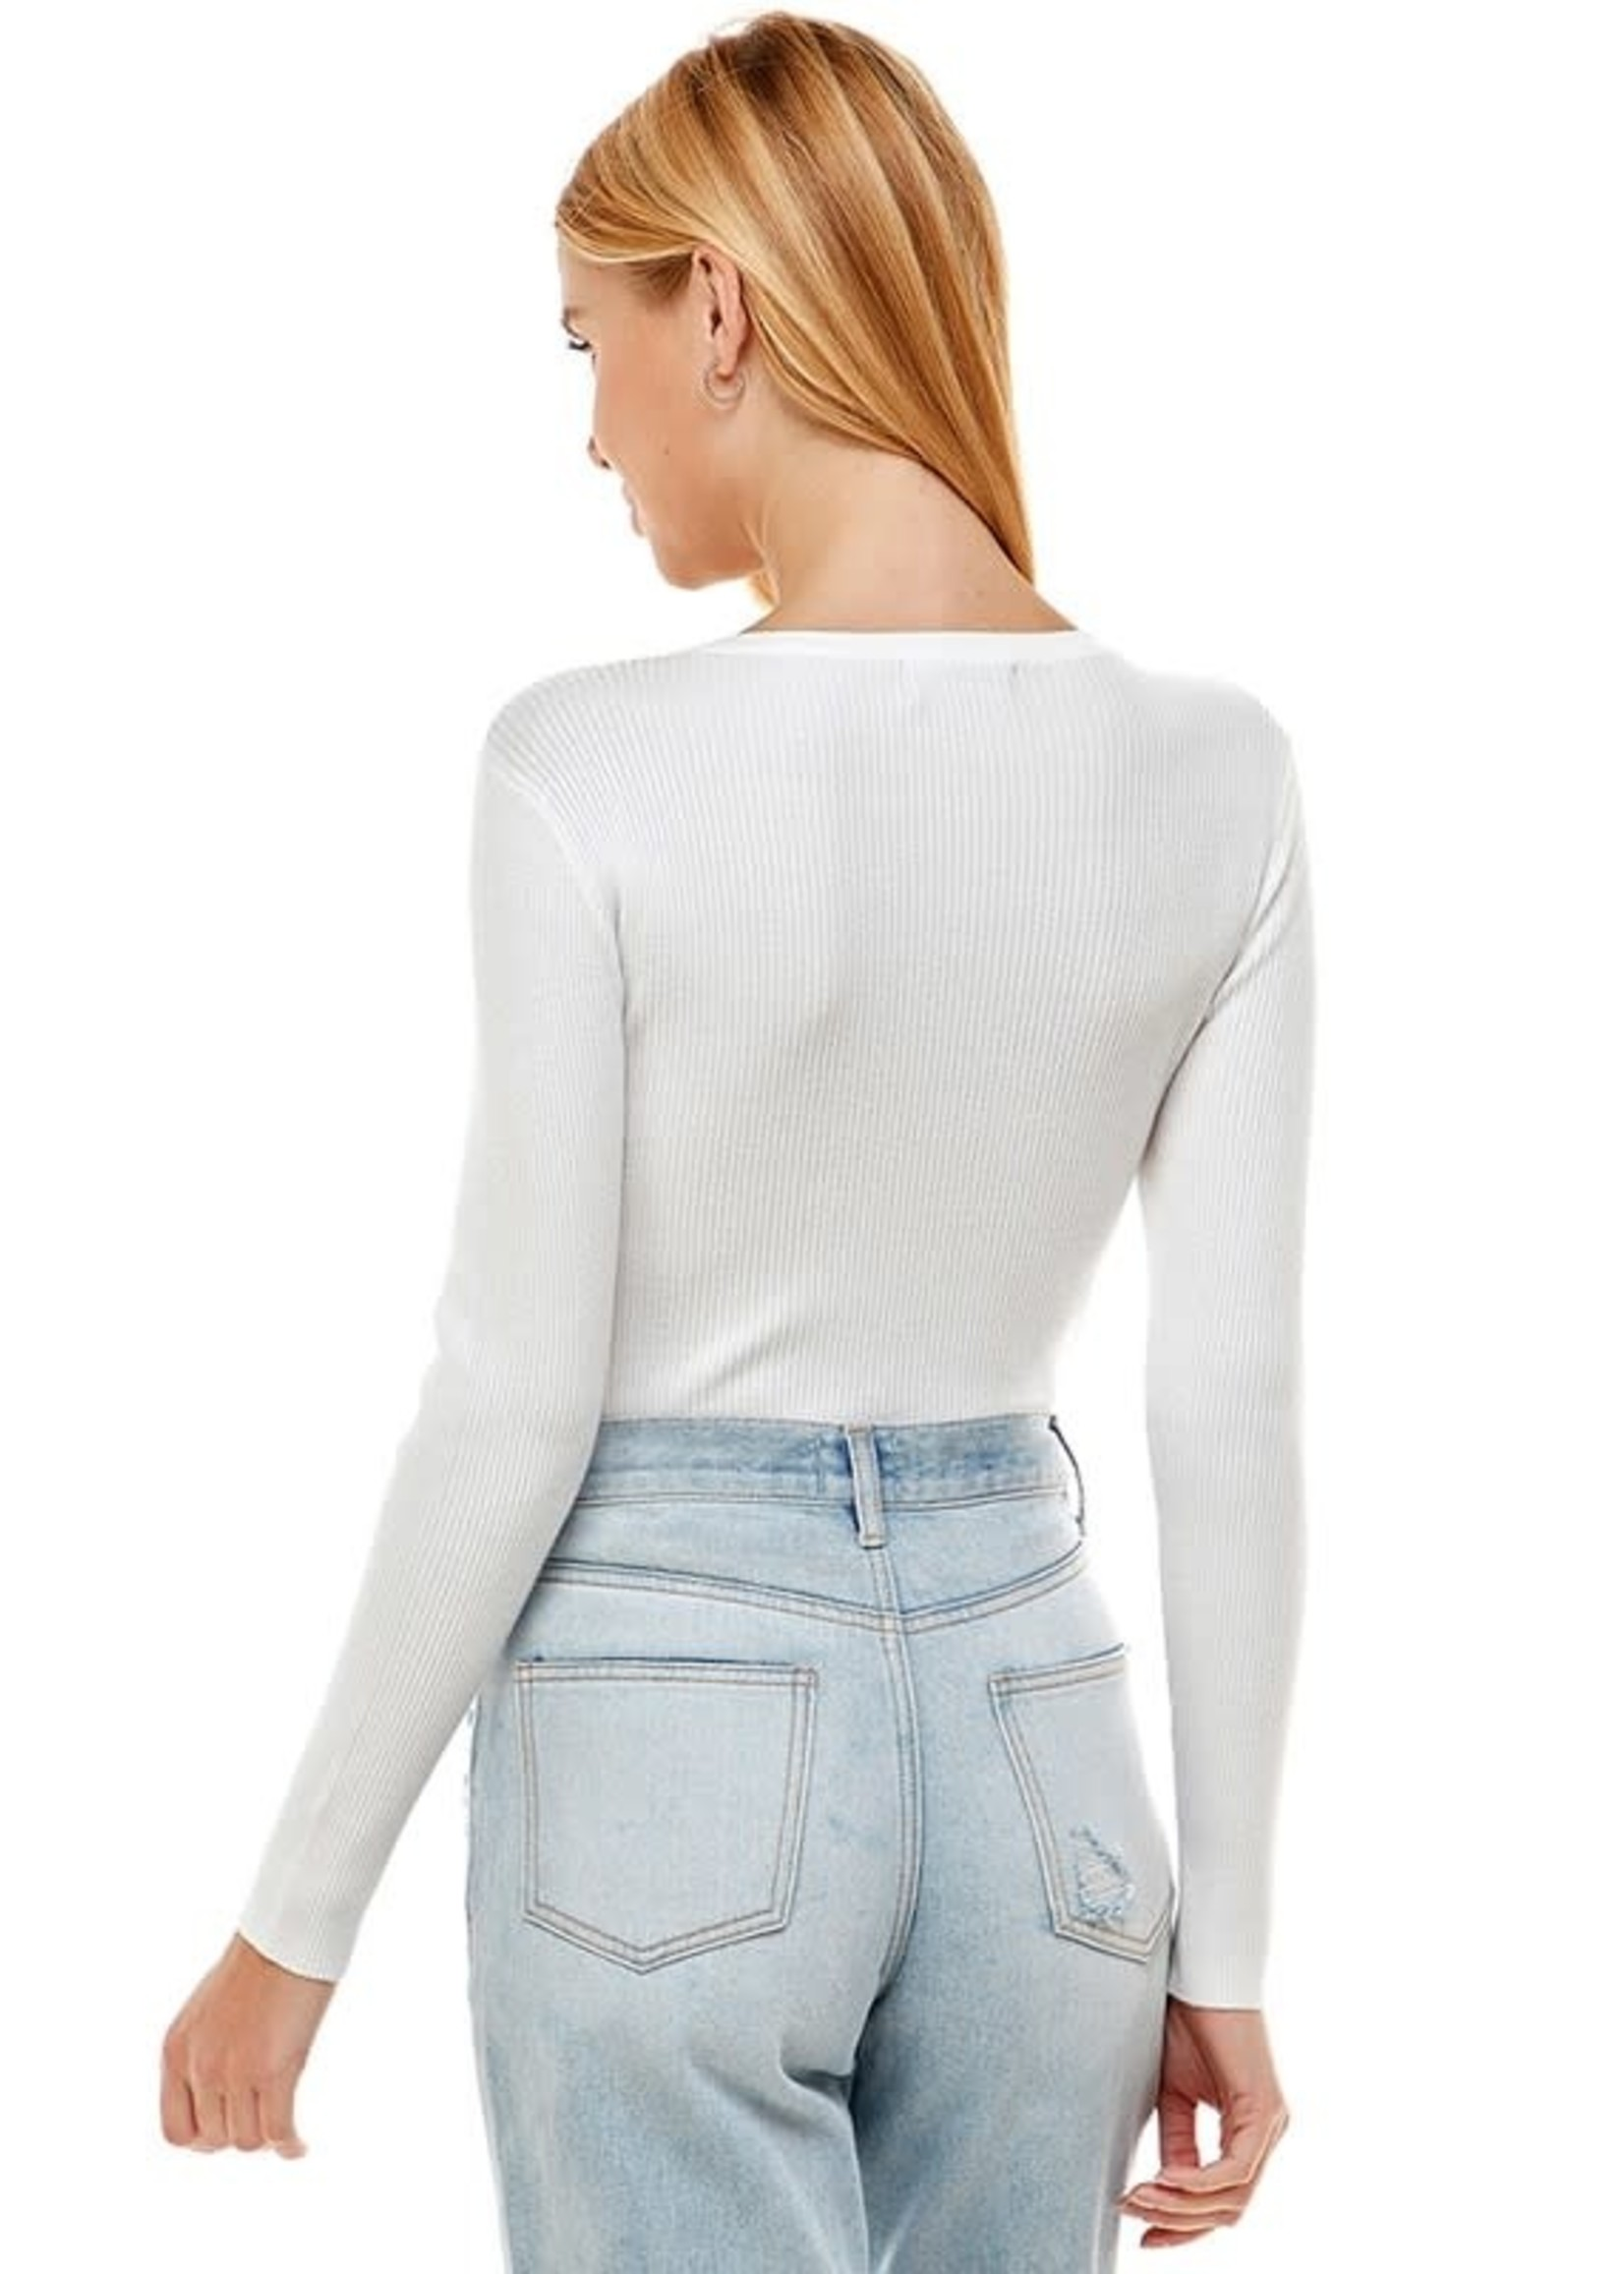 Ontwelfth Blinged Long Sleeved Square Neck Top - 1222498